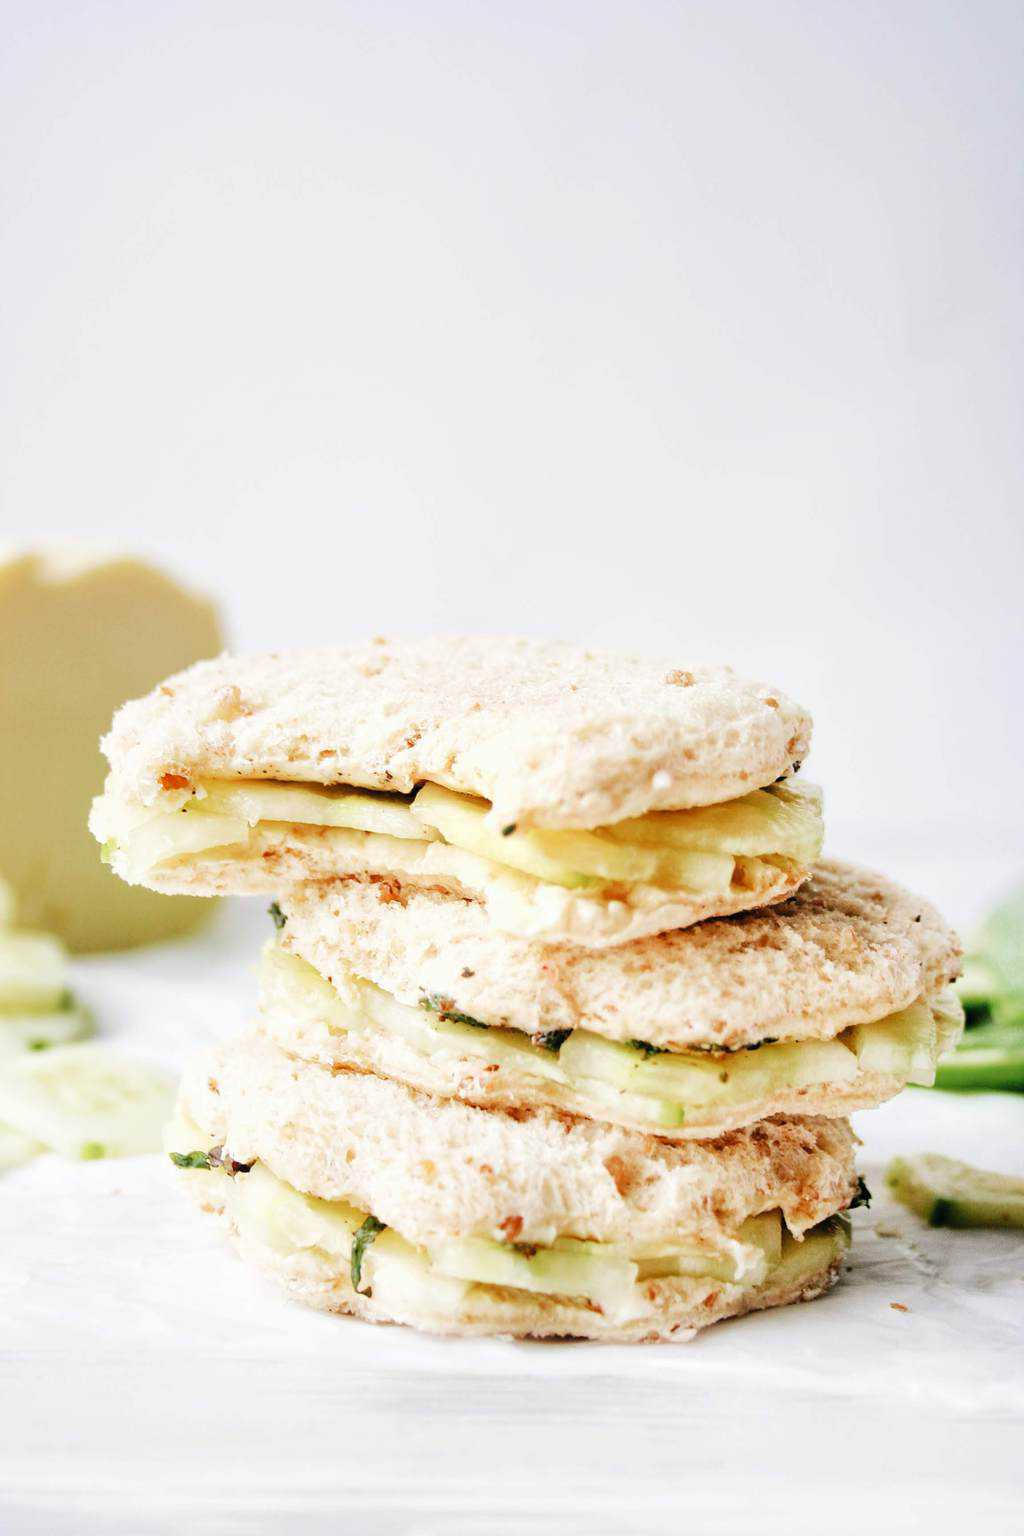 stacked cucumber sandwiches with a bite in one